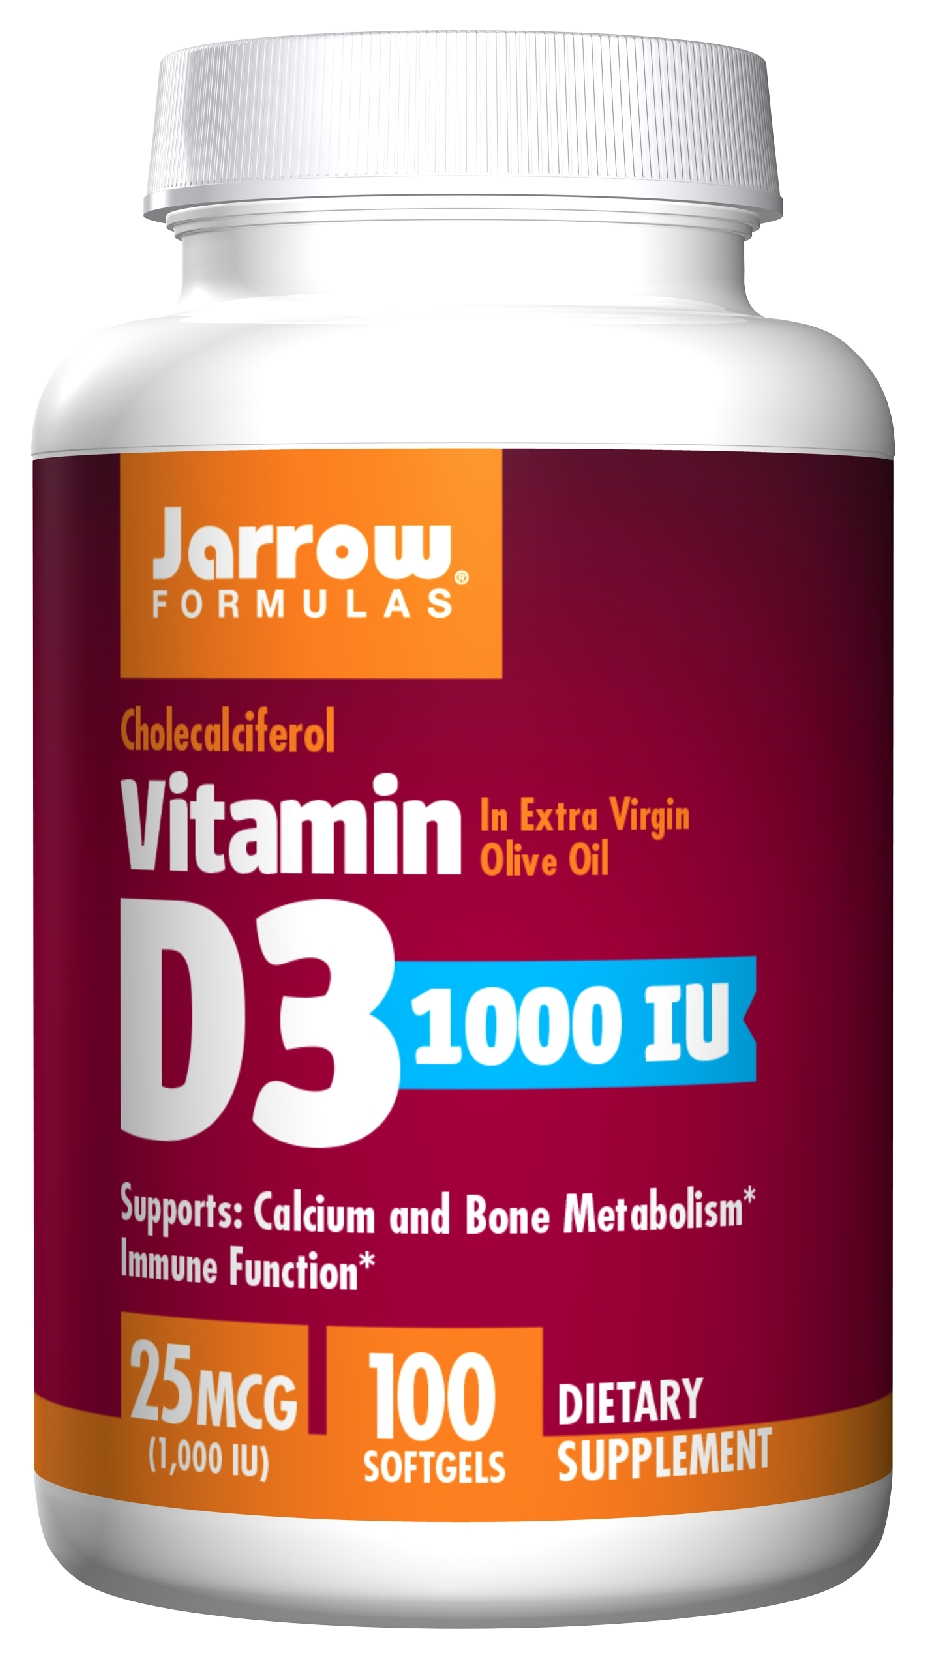 Vitamin D3 1000 IU 100 sgels by Jarrow Formulas